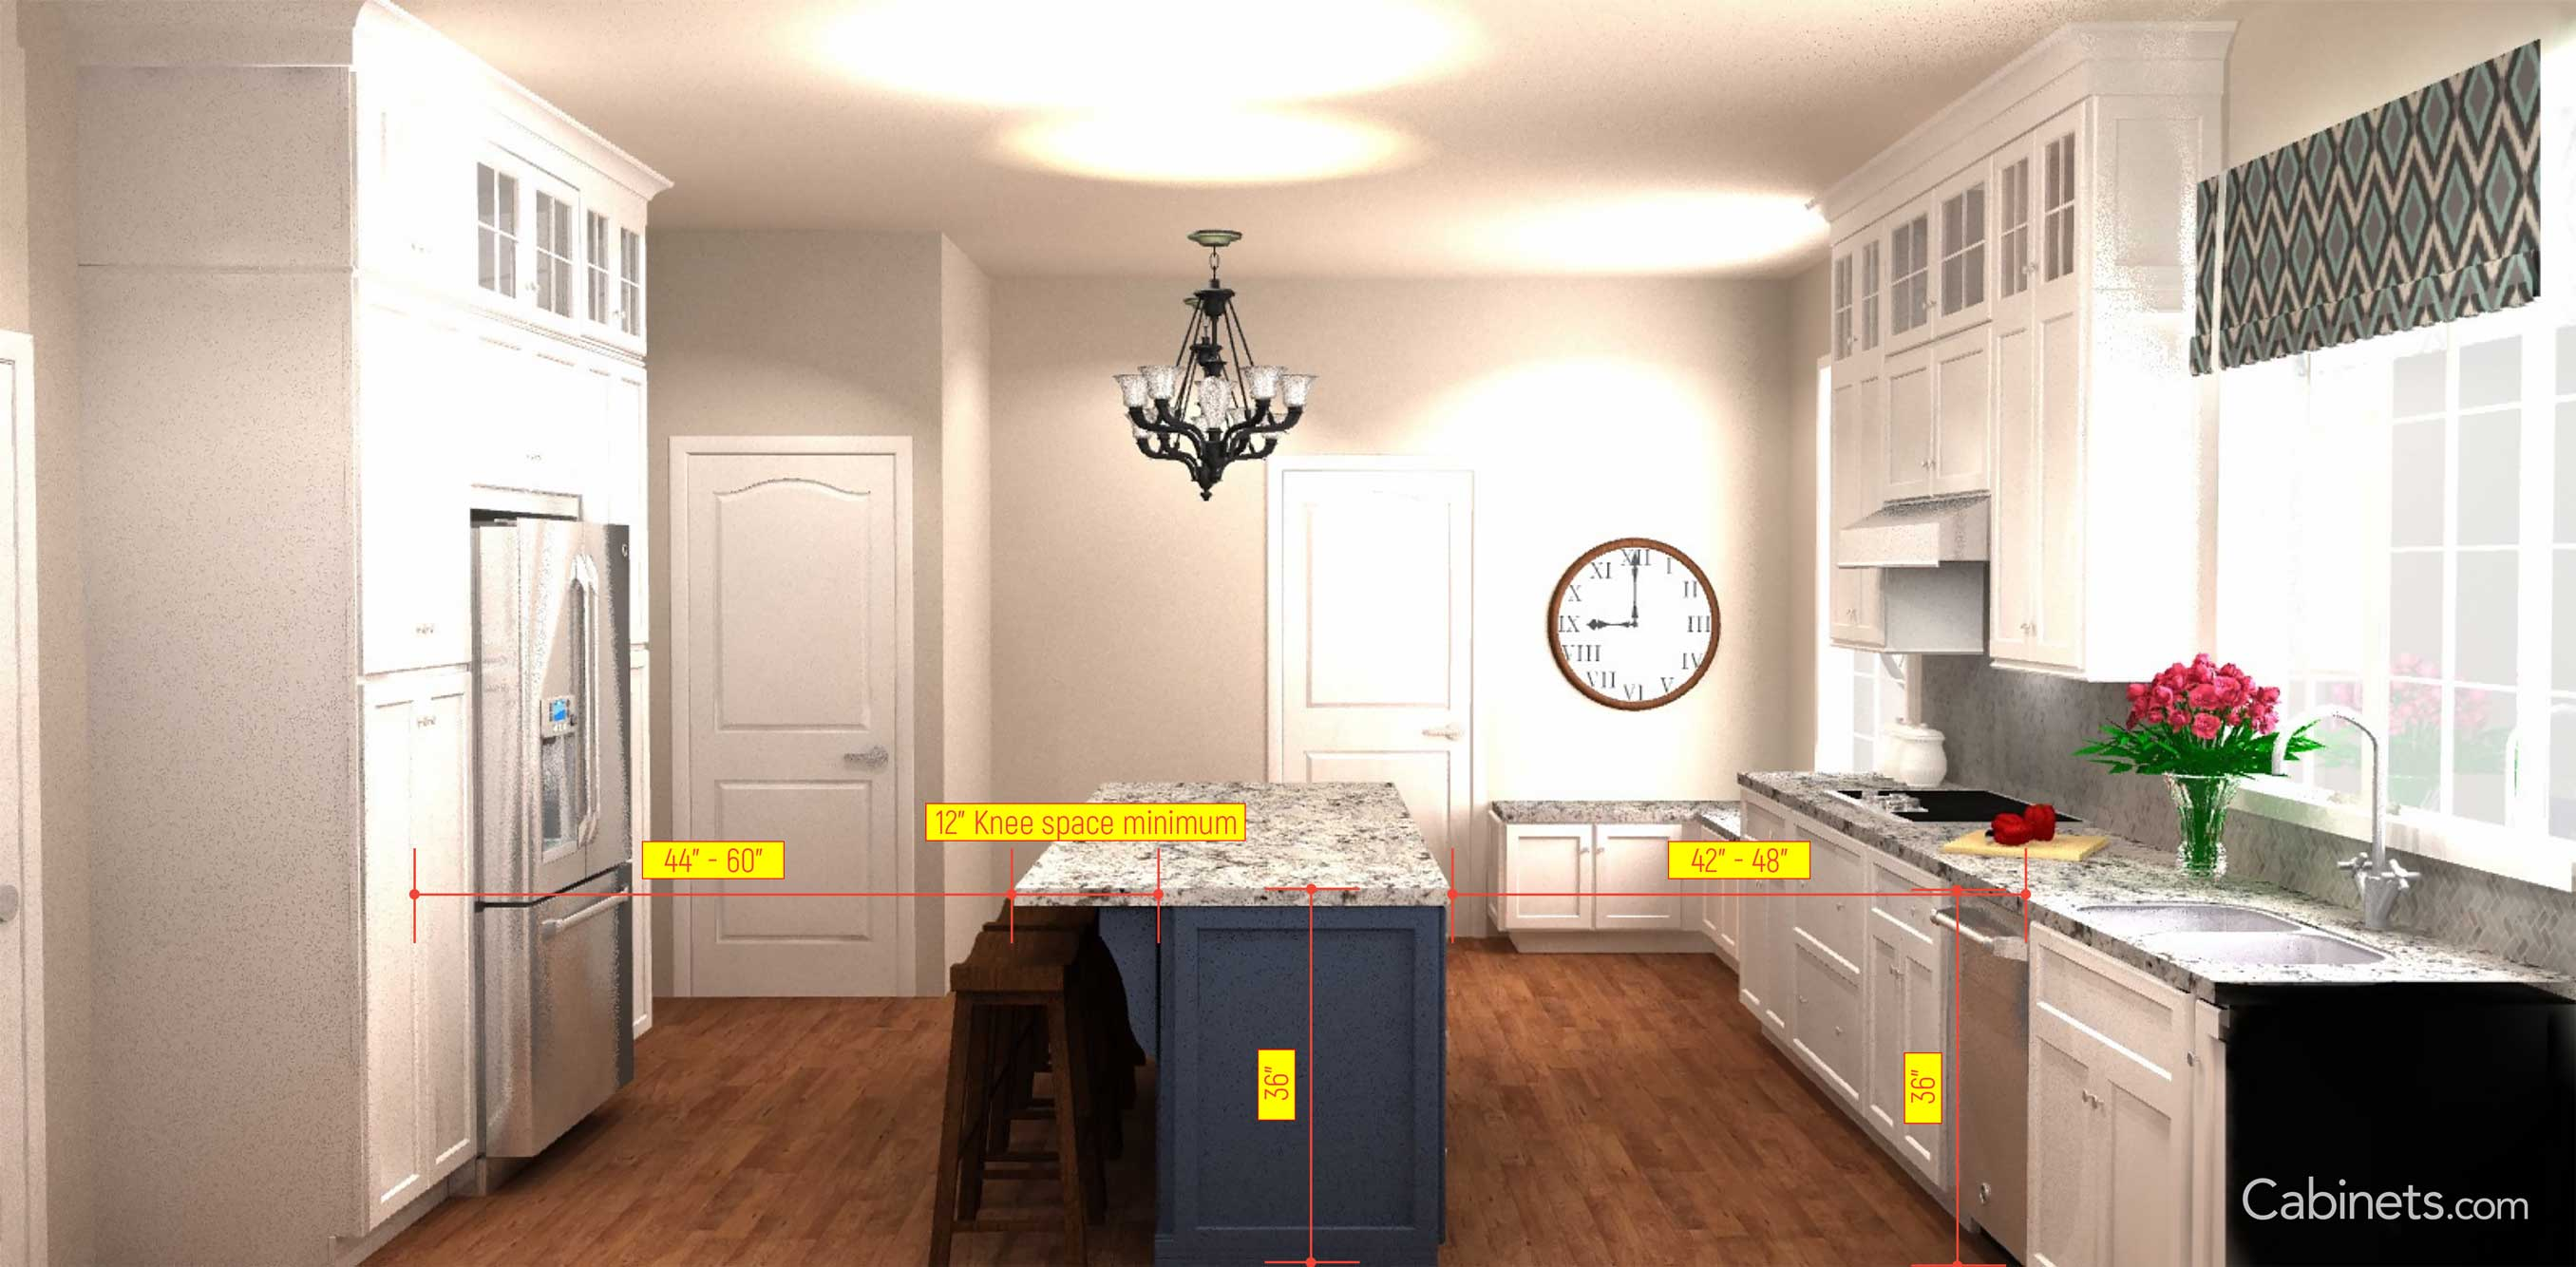 Important Kitchen Dimensions Start Planning Cabinets Com